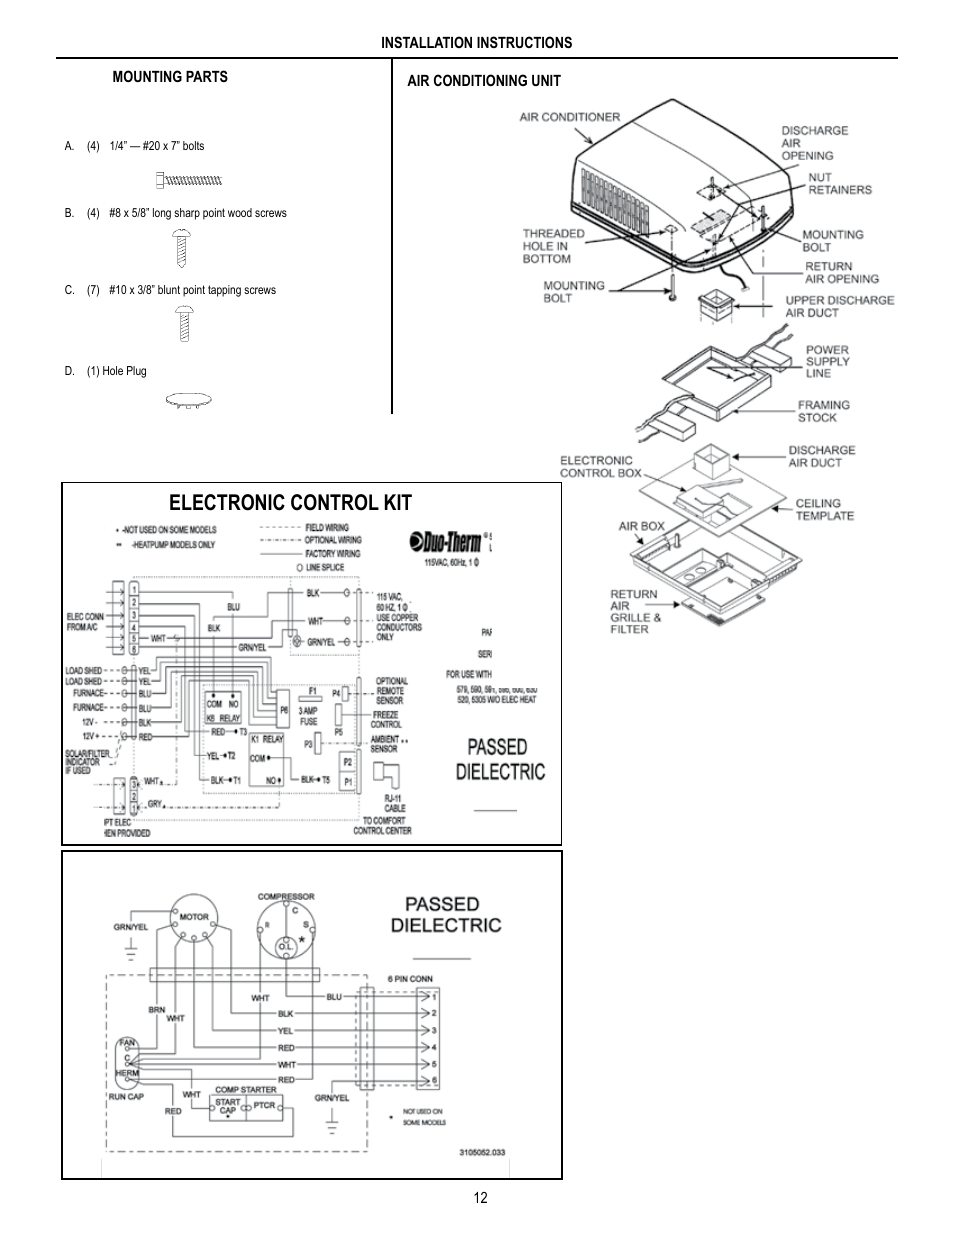 medium resolution of electronic control kit unit field wiring diagram dometic brisk air 590 series user manual page 12 12